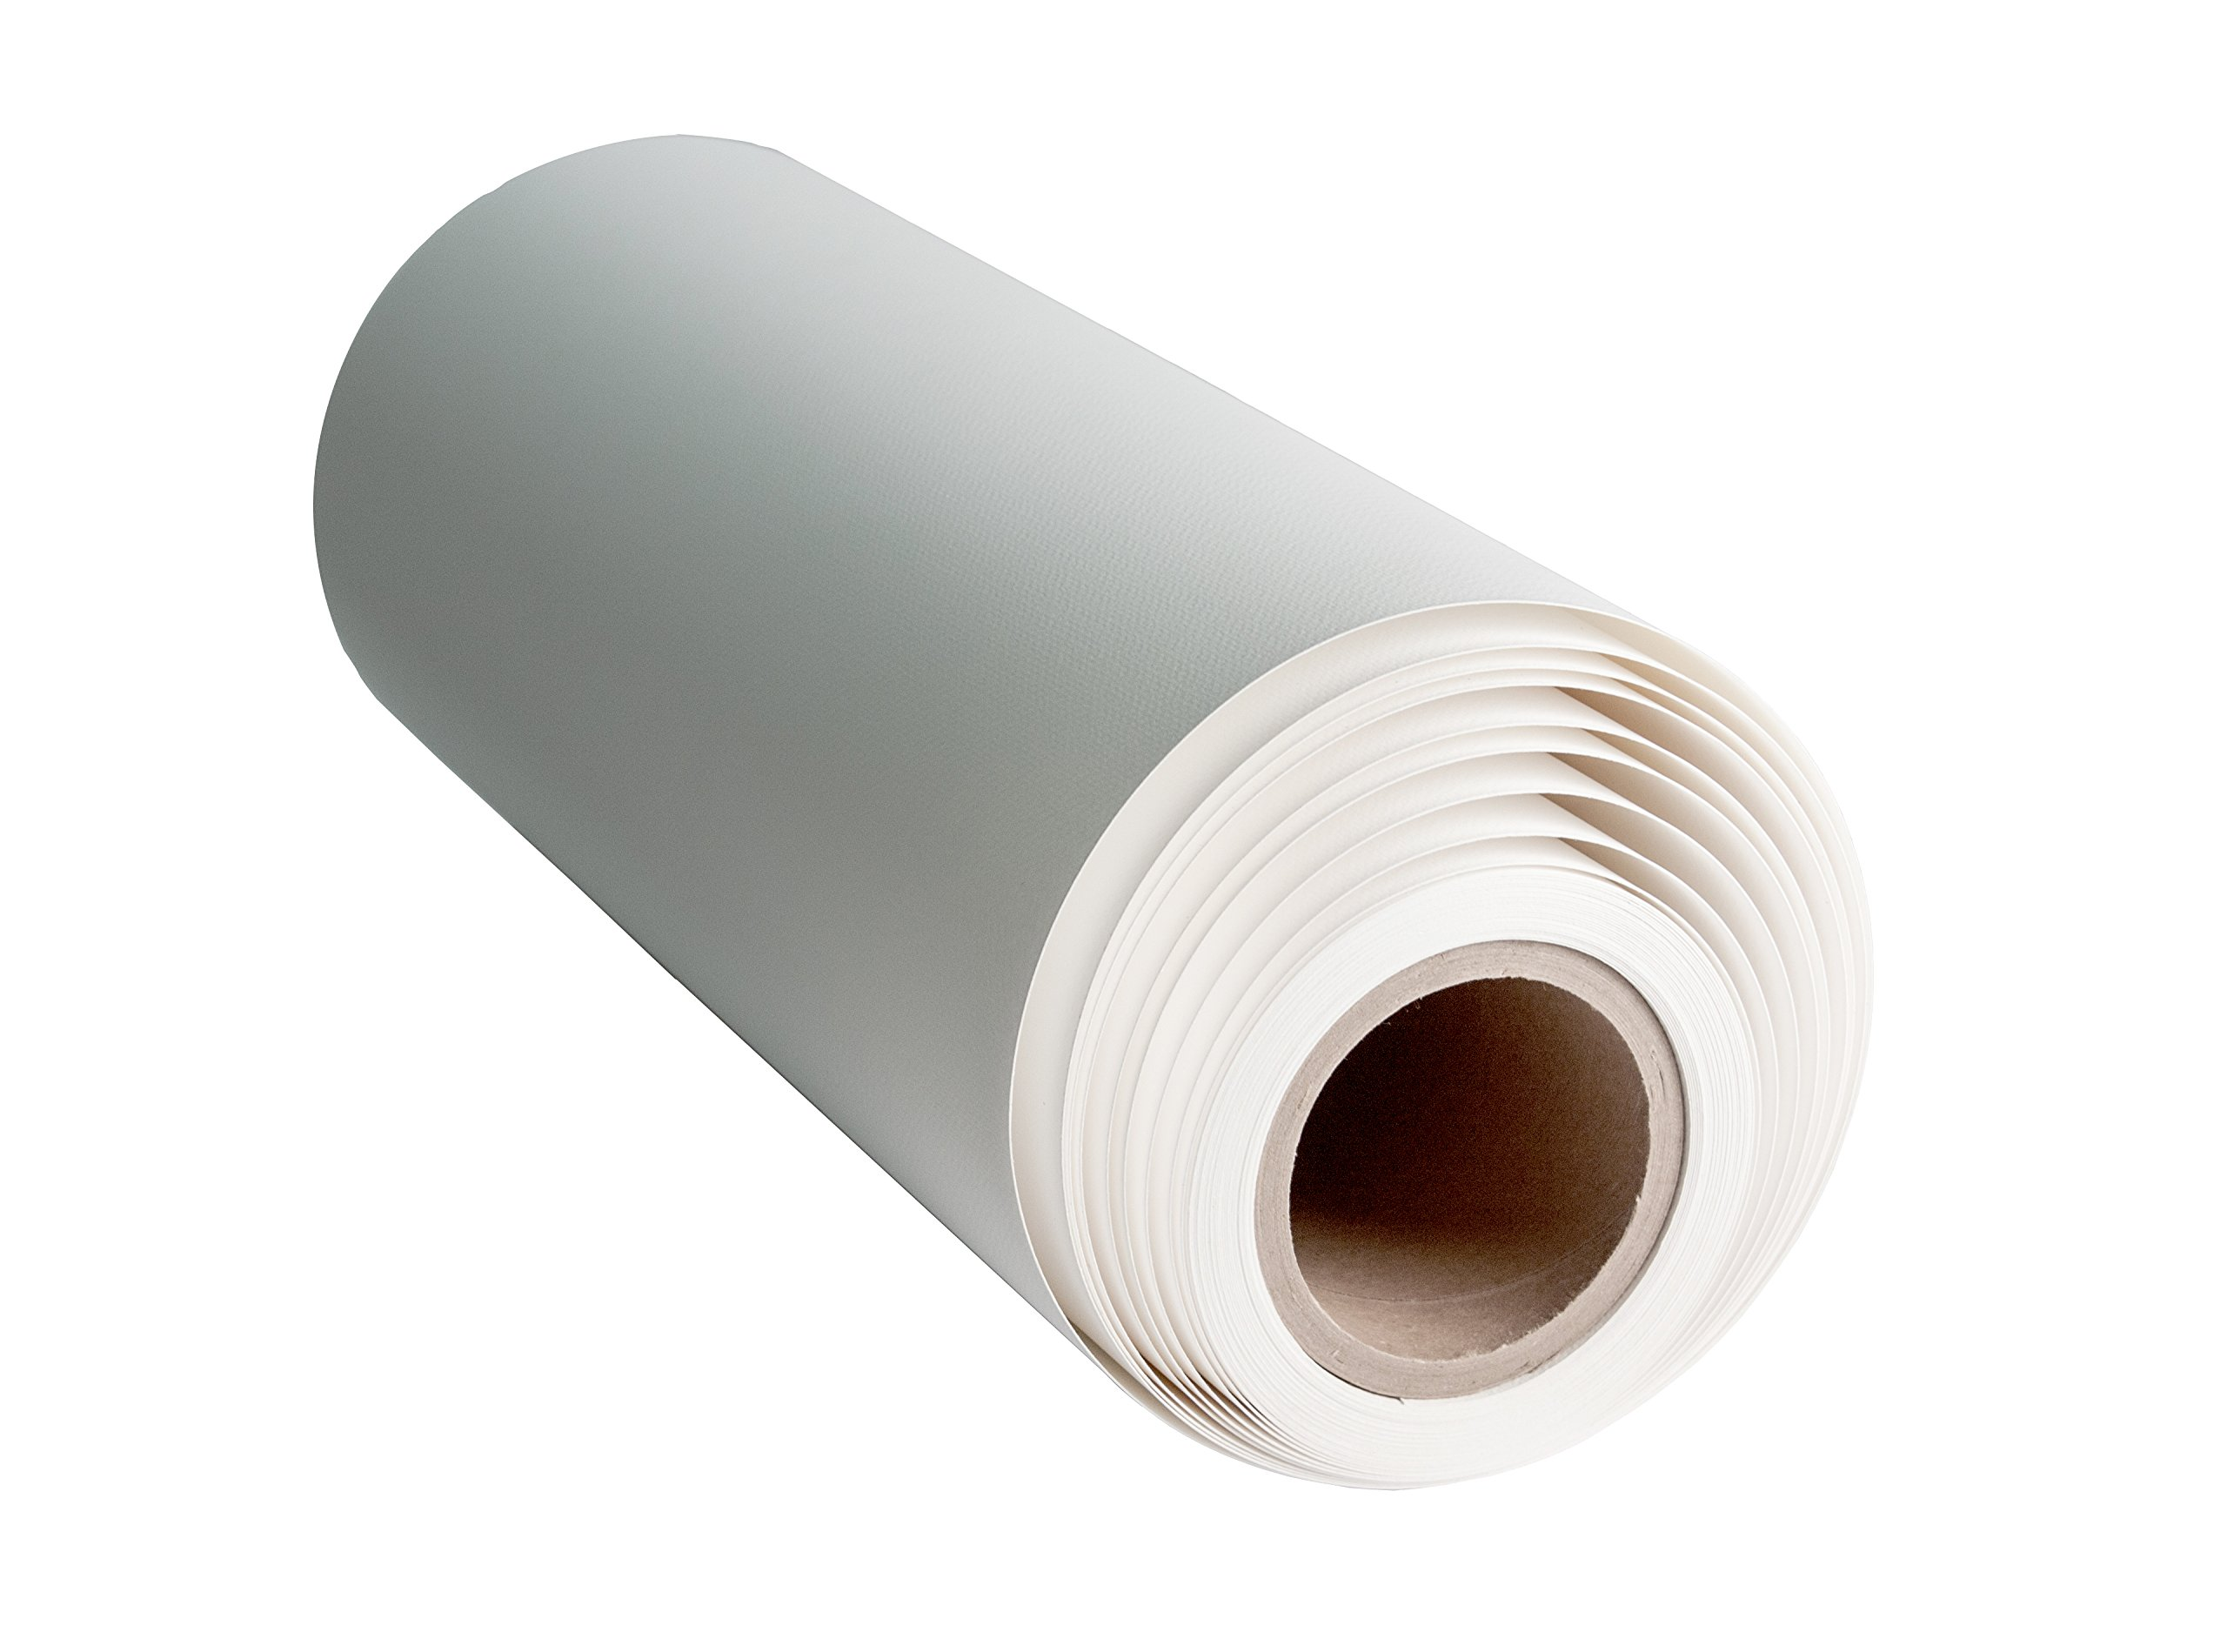 800M Matte Poly-Cotton Inkjet Canvas 21 mil and bright white. This 17''x40' roll is Exceptional For Digital Art and Photo Printing, Signage, Backdrops, Murals, etc. on Most Canon, HP and Epson Printers by Breathing Color